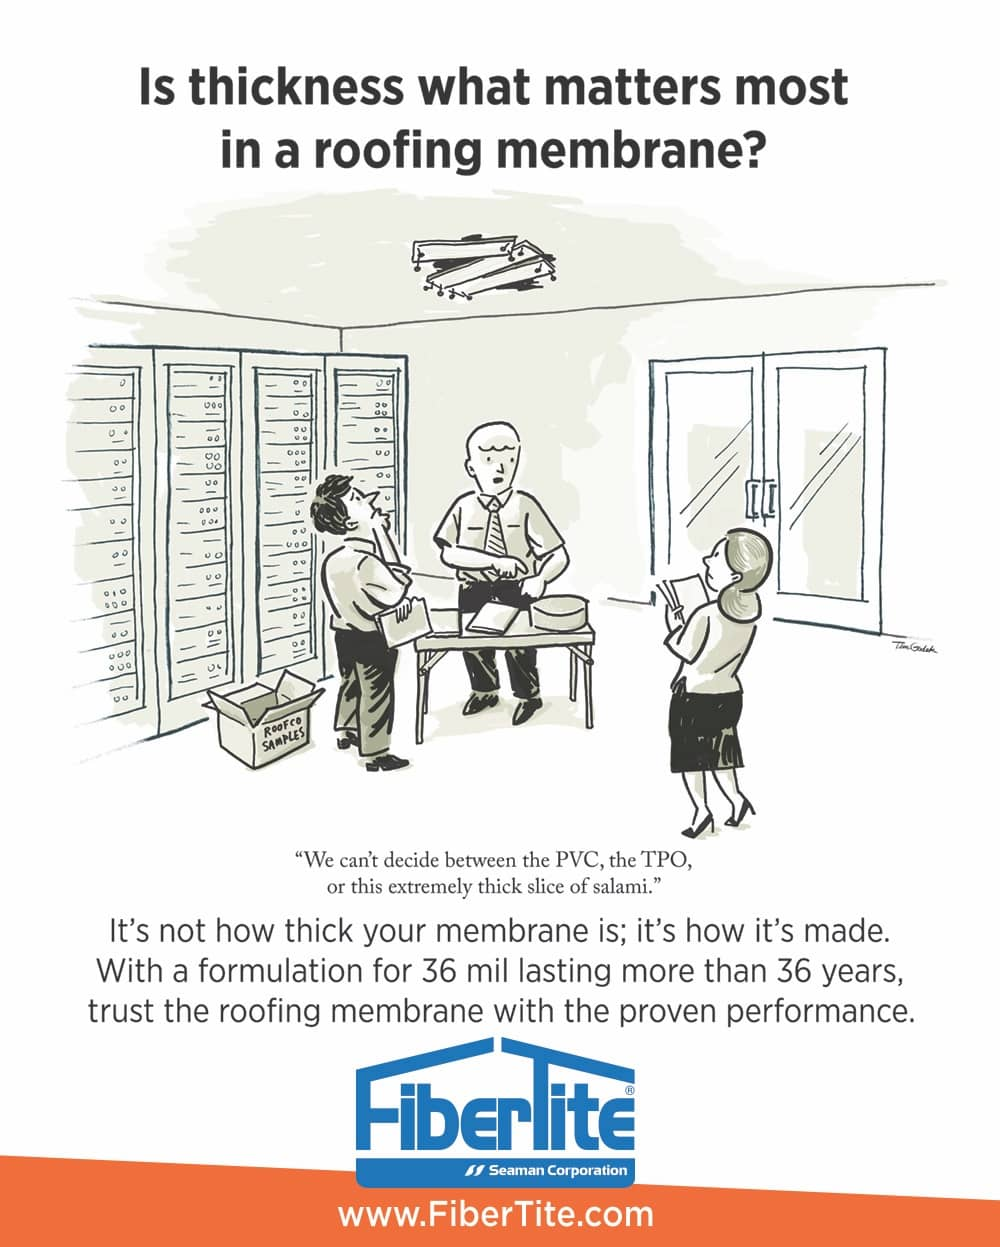 Trust the Roofing Membrane with the Proven Performance